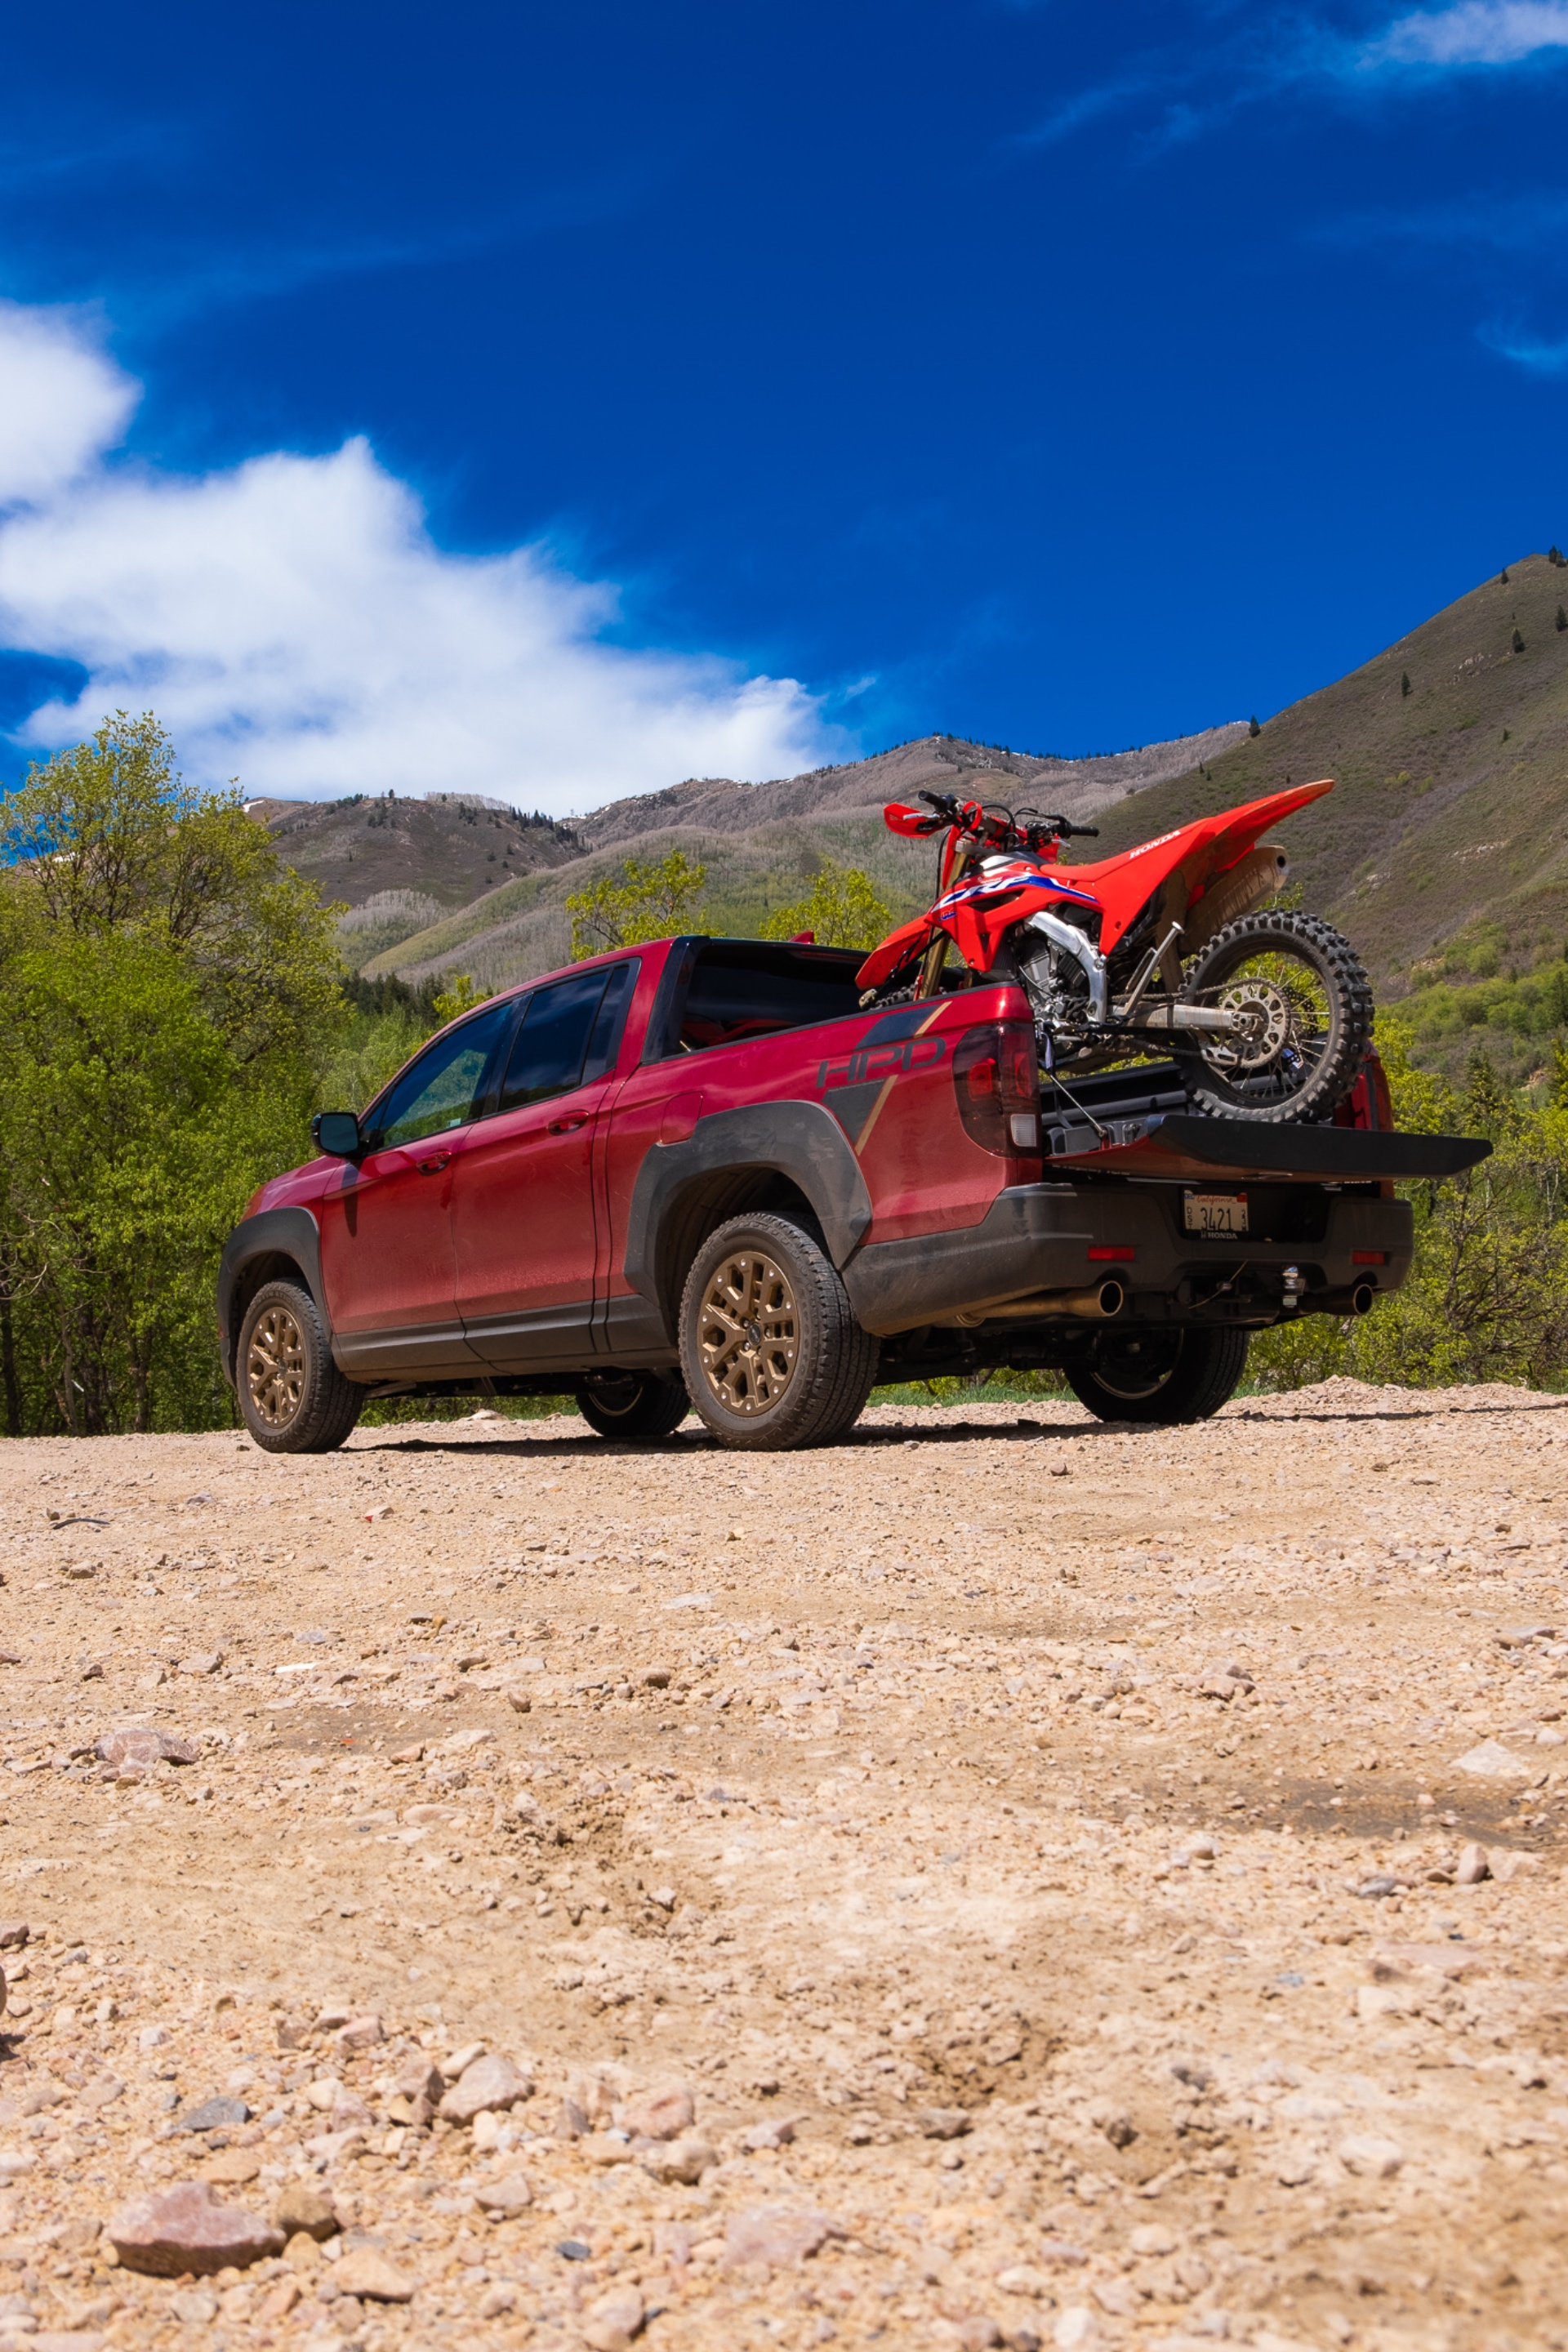 The Ridgeline with a CRF450RX in the bed.